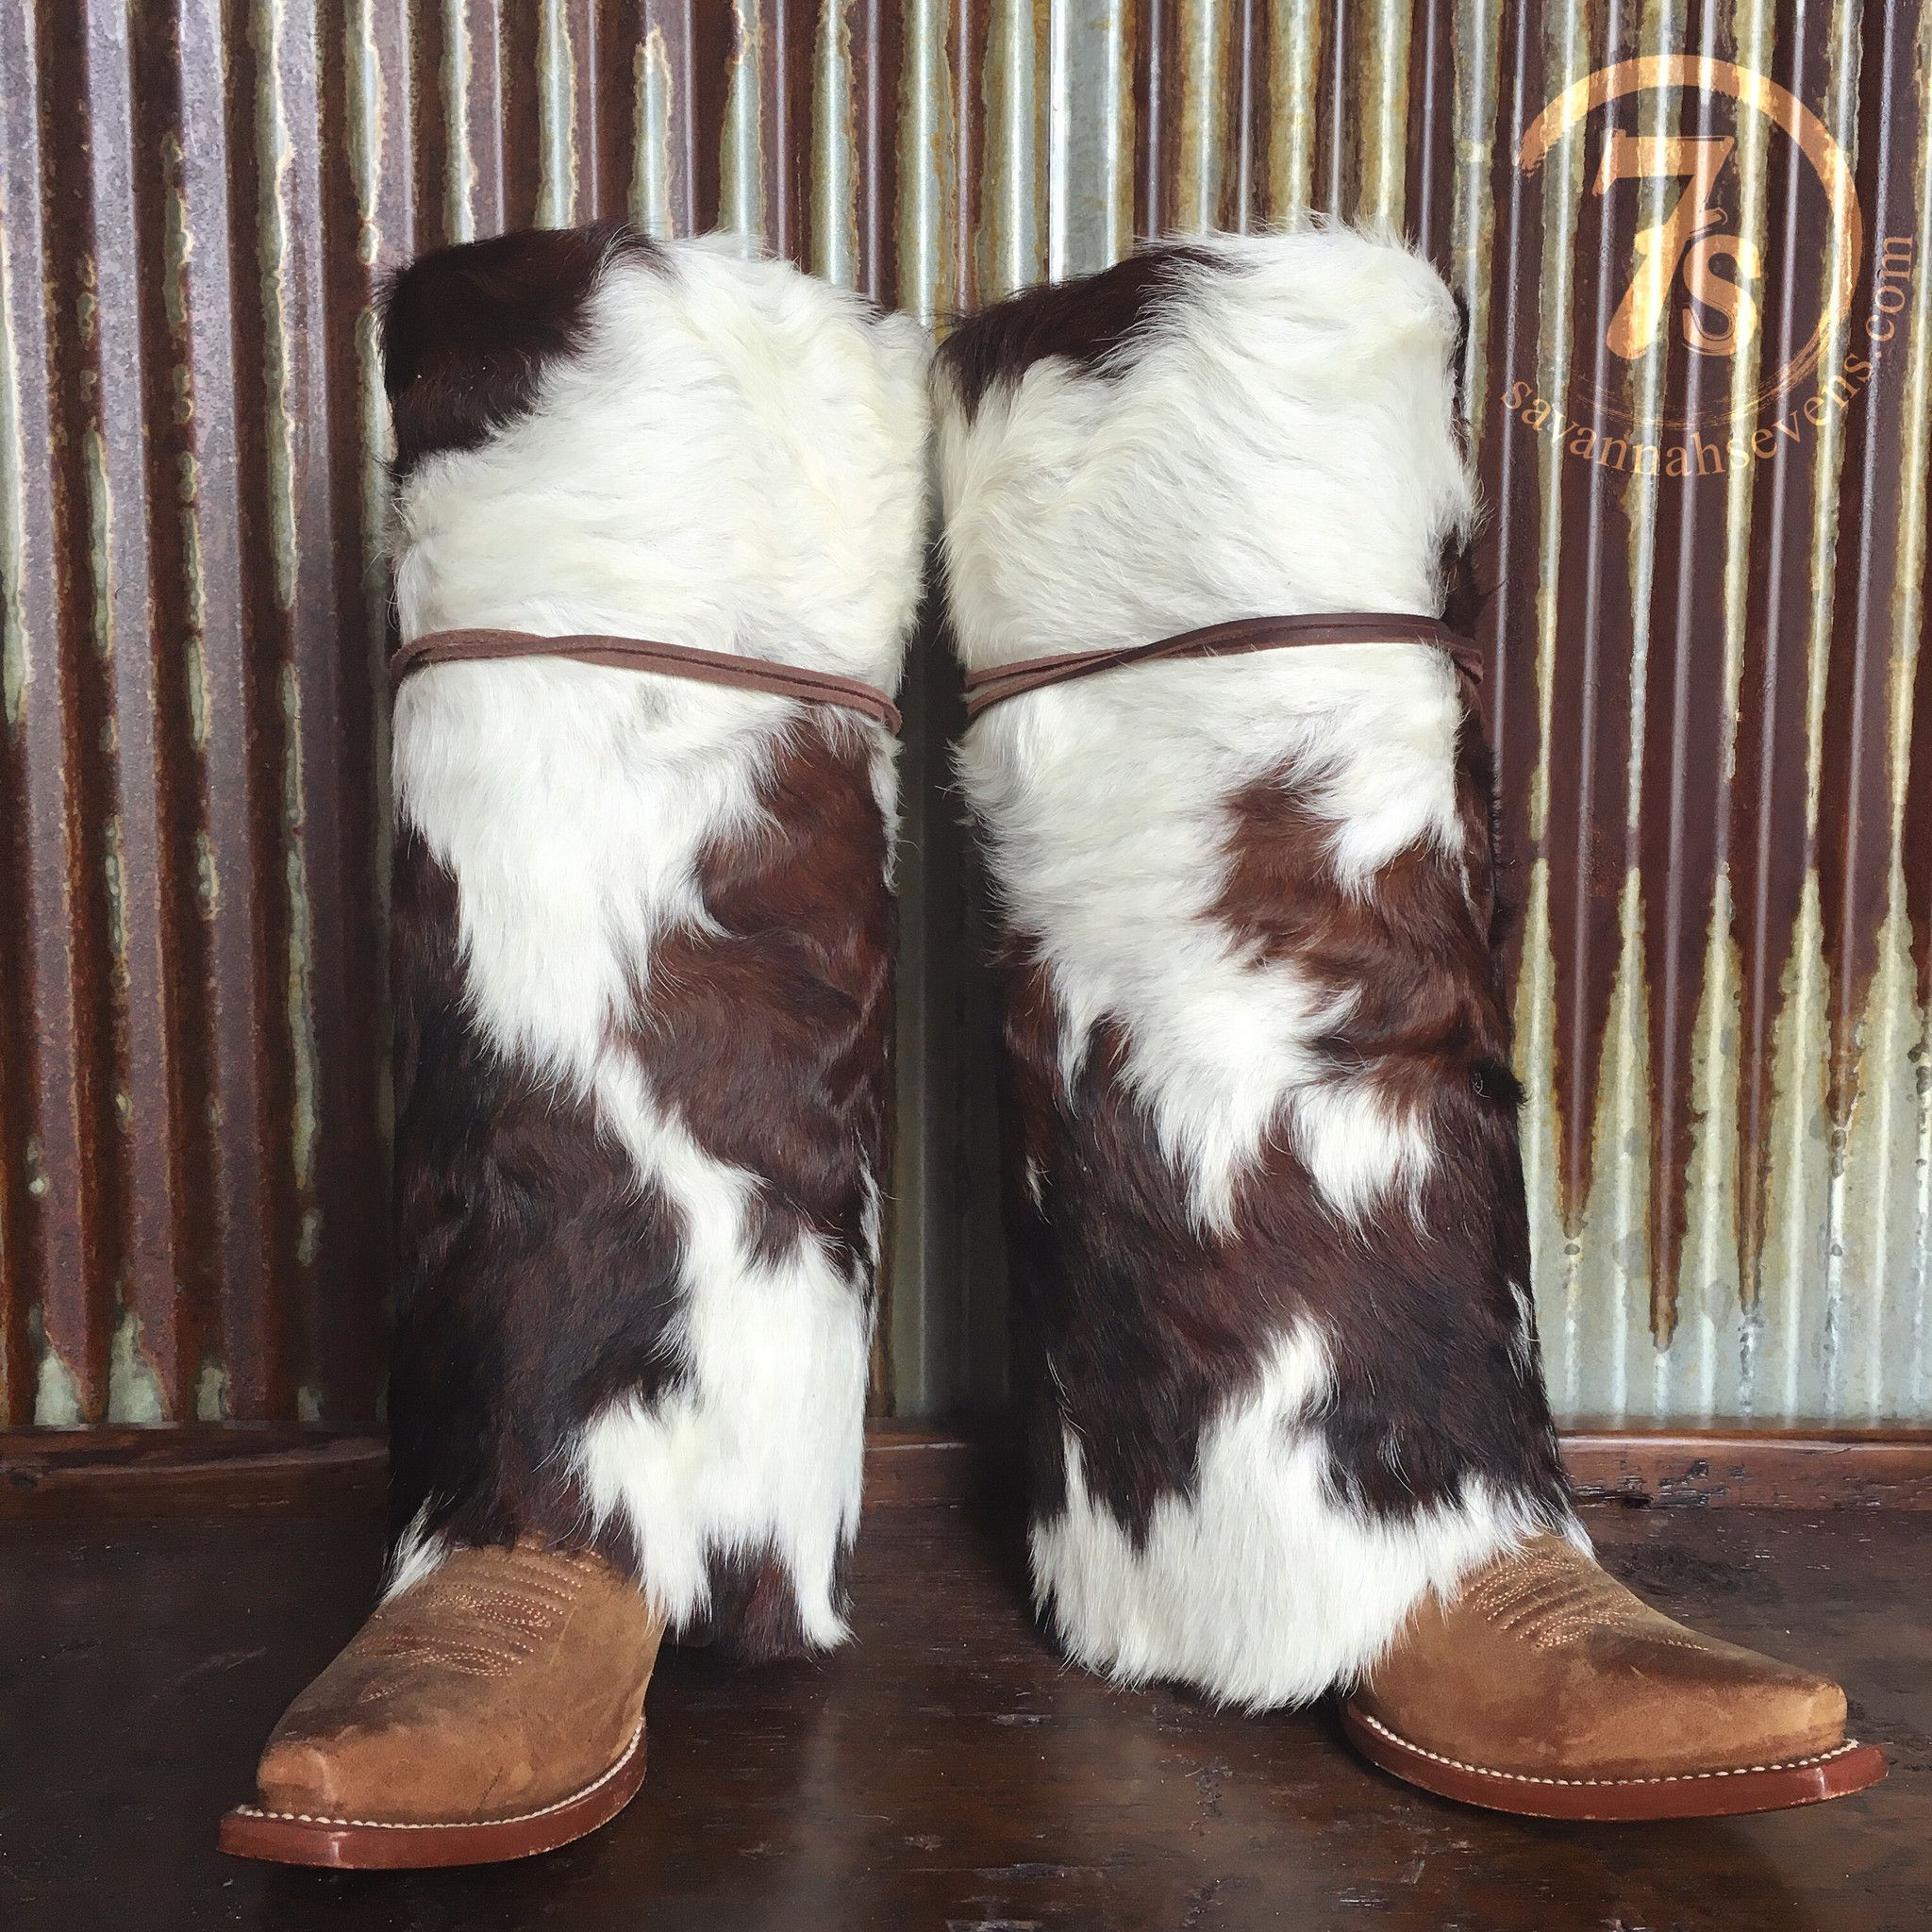 The Dodge City Boot Rugs   need.   Pinterest   Dodge and Cowgirl boot